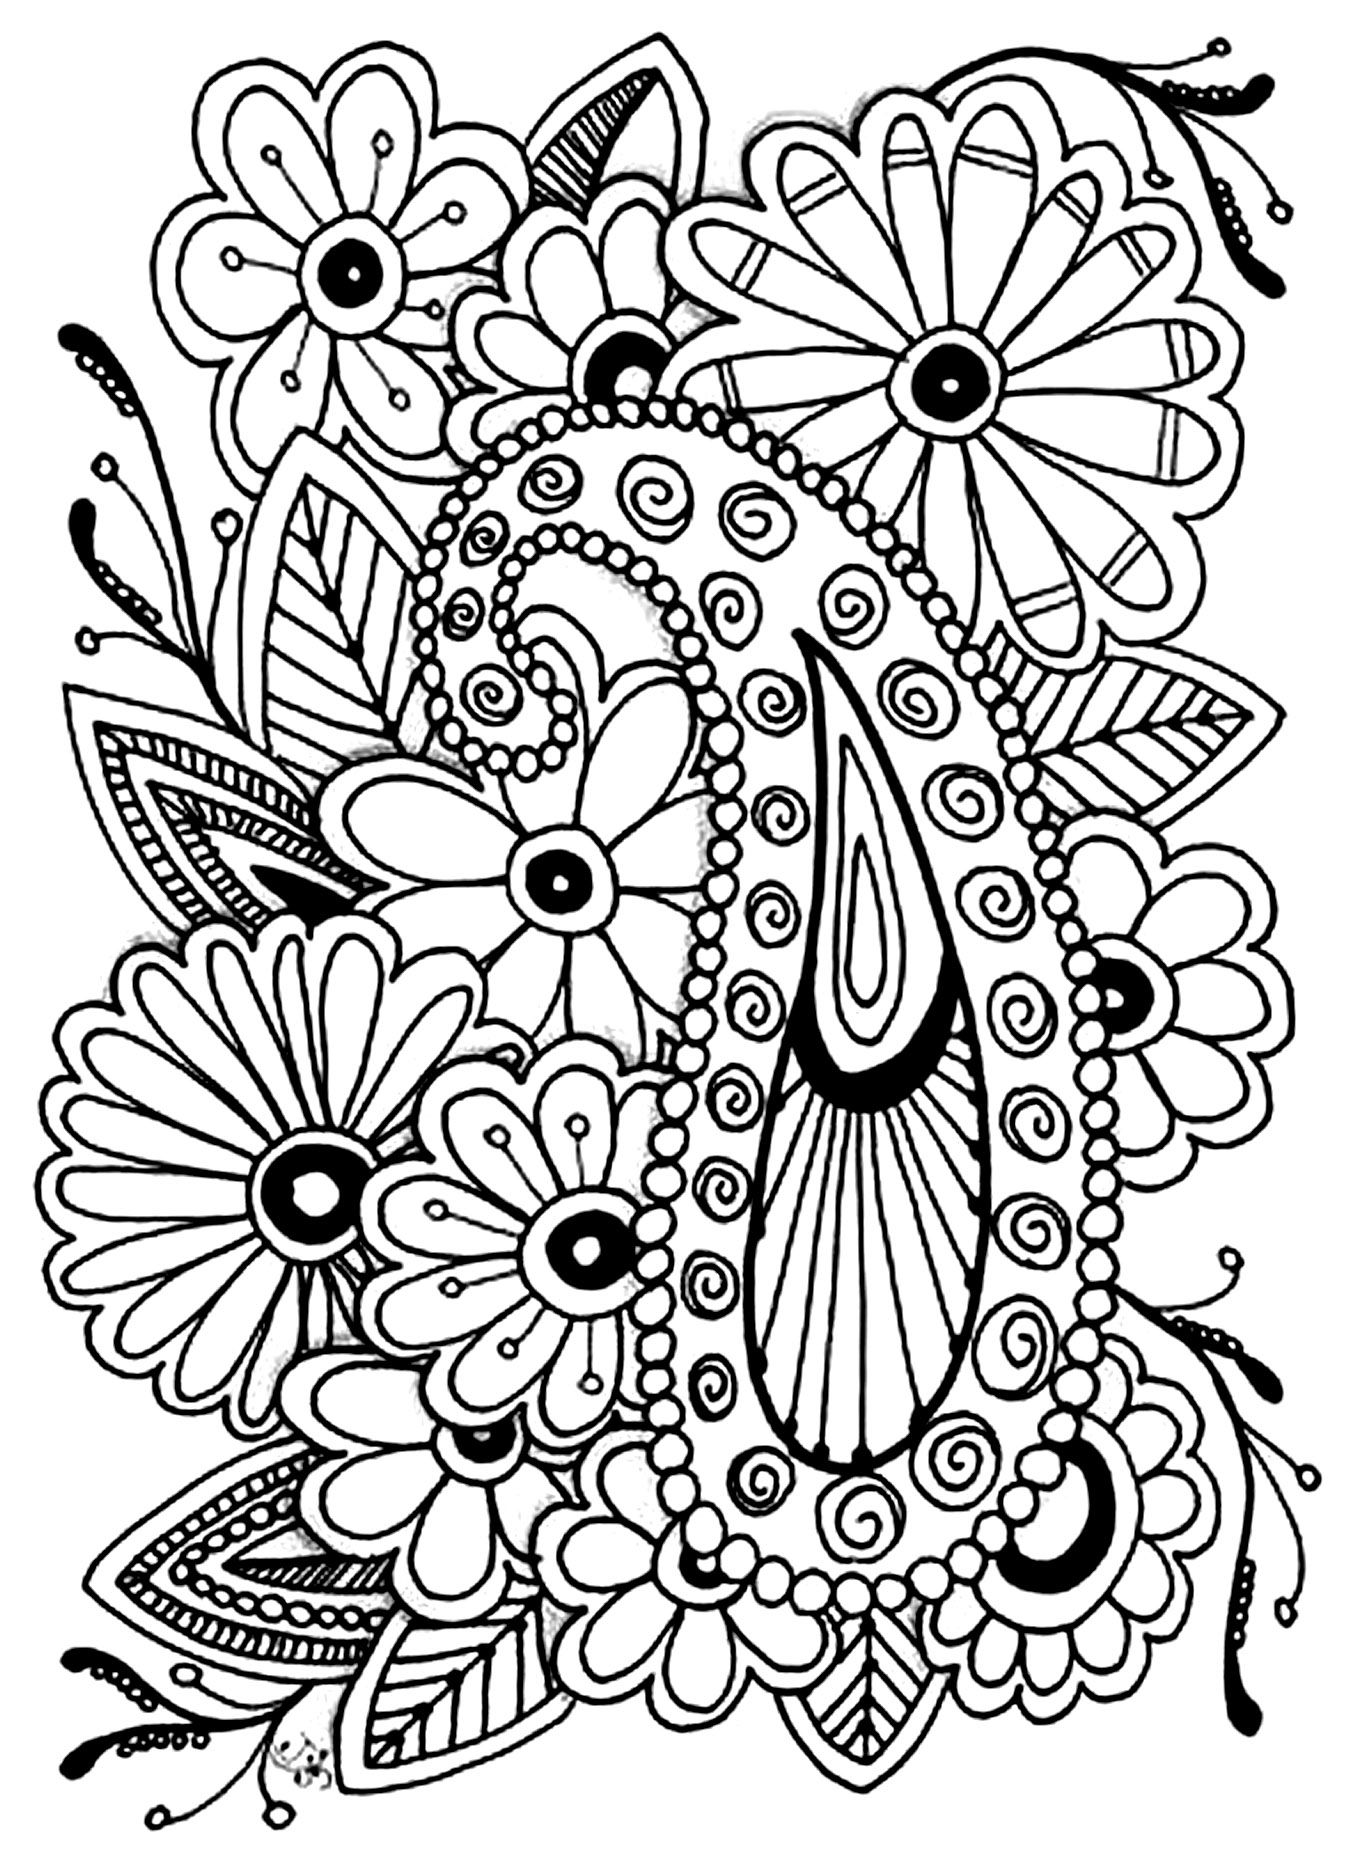 free printable paisley coloring pages get this adult coloring pages paisley printable 8esy coloring pages free printable paisley